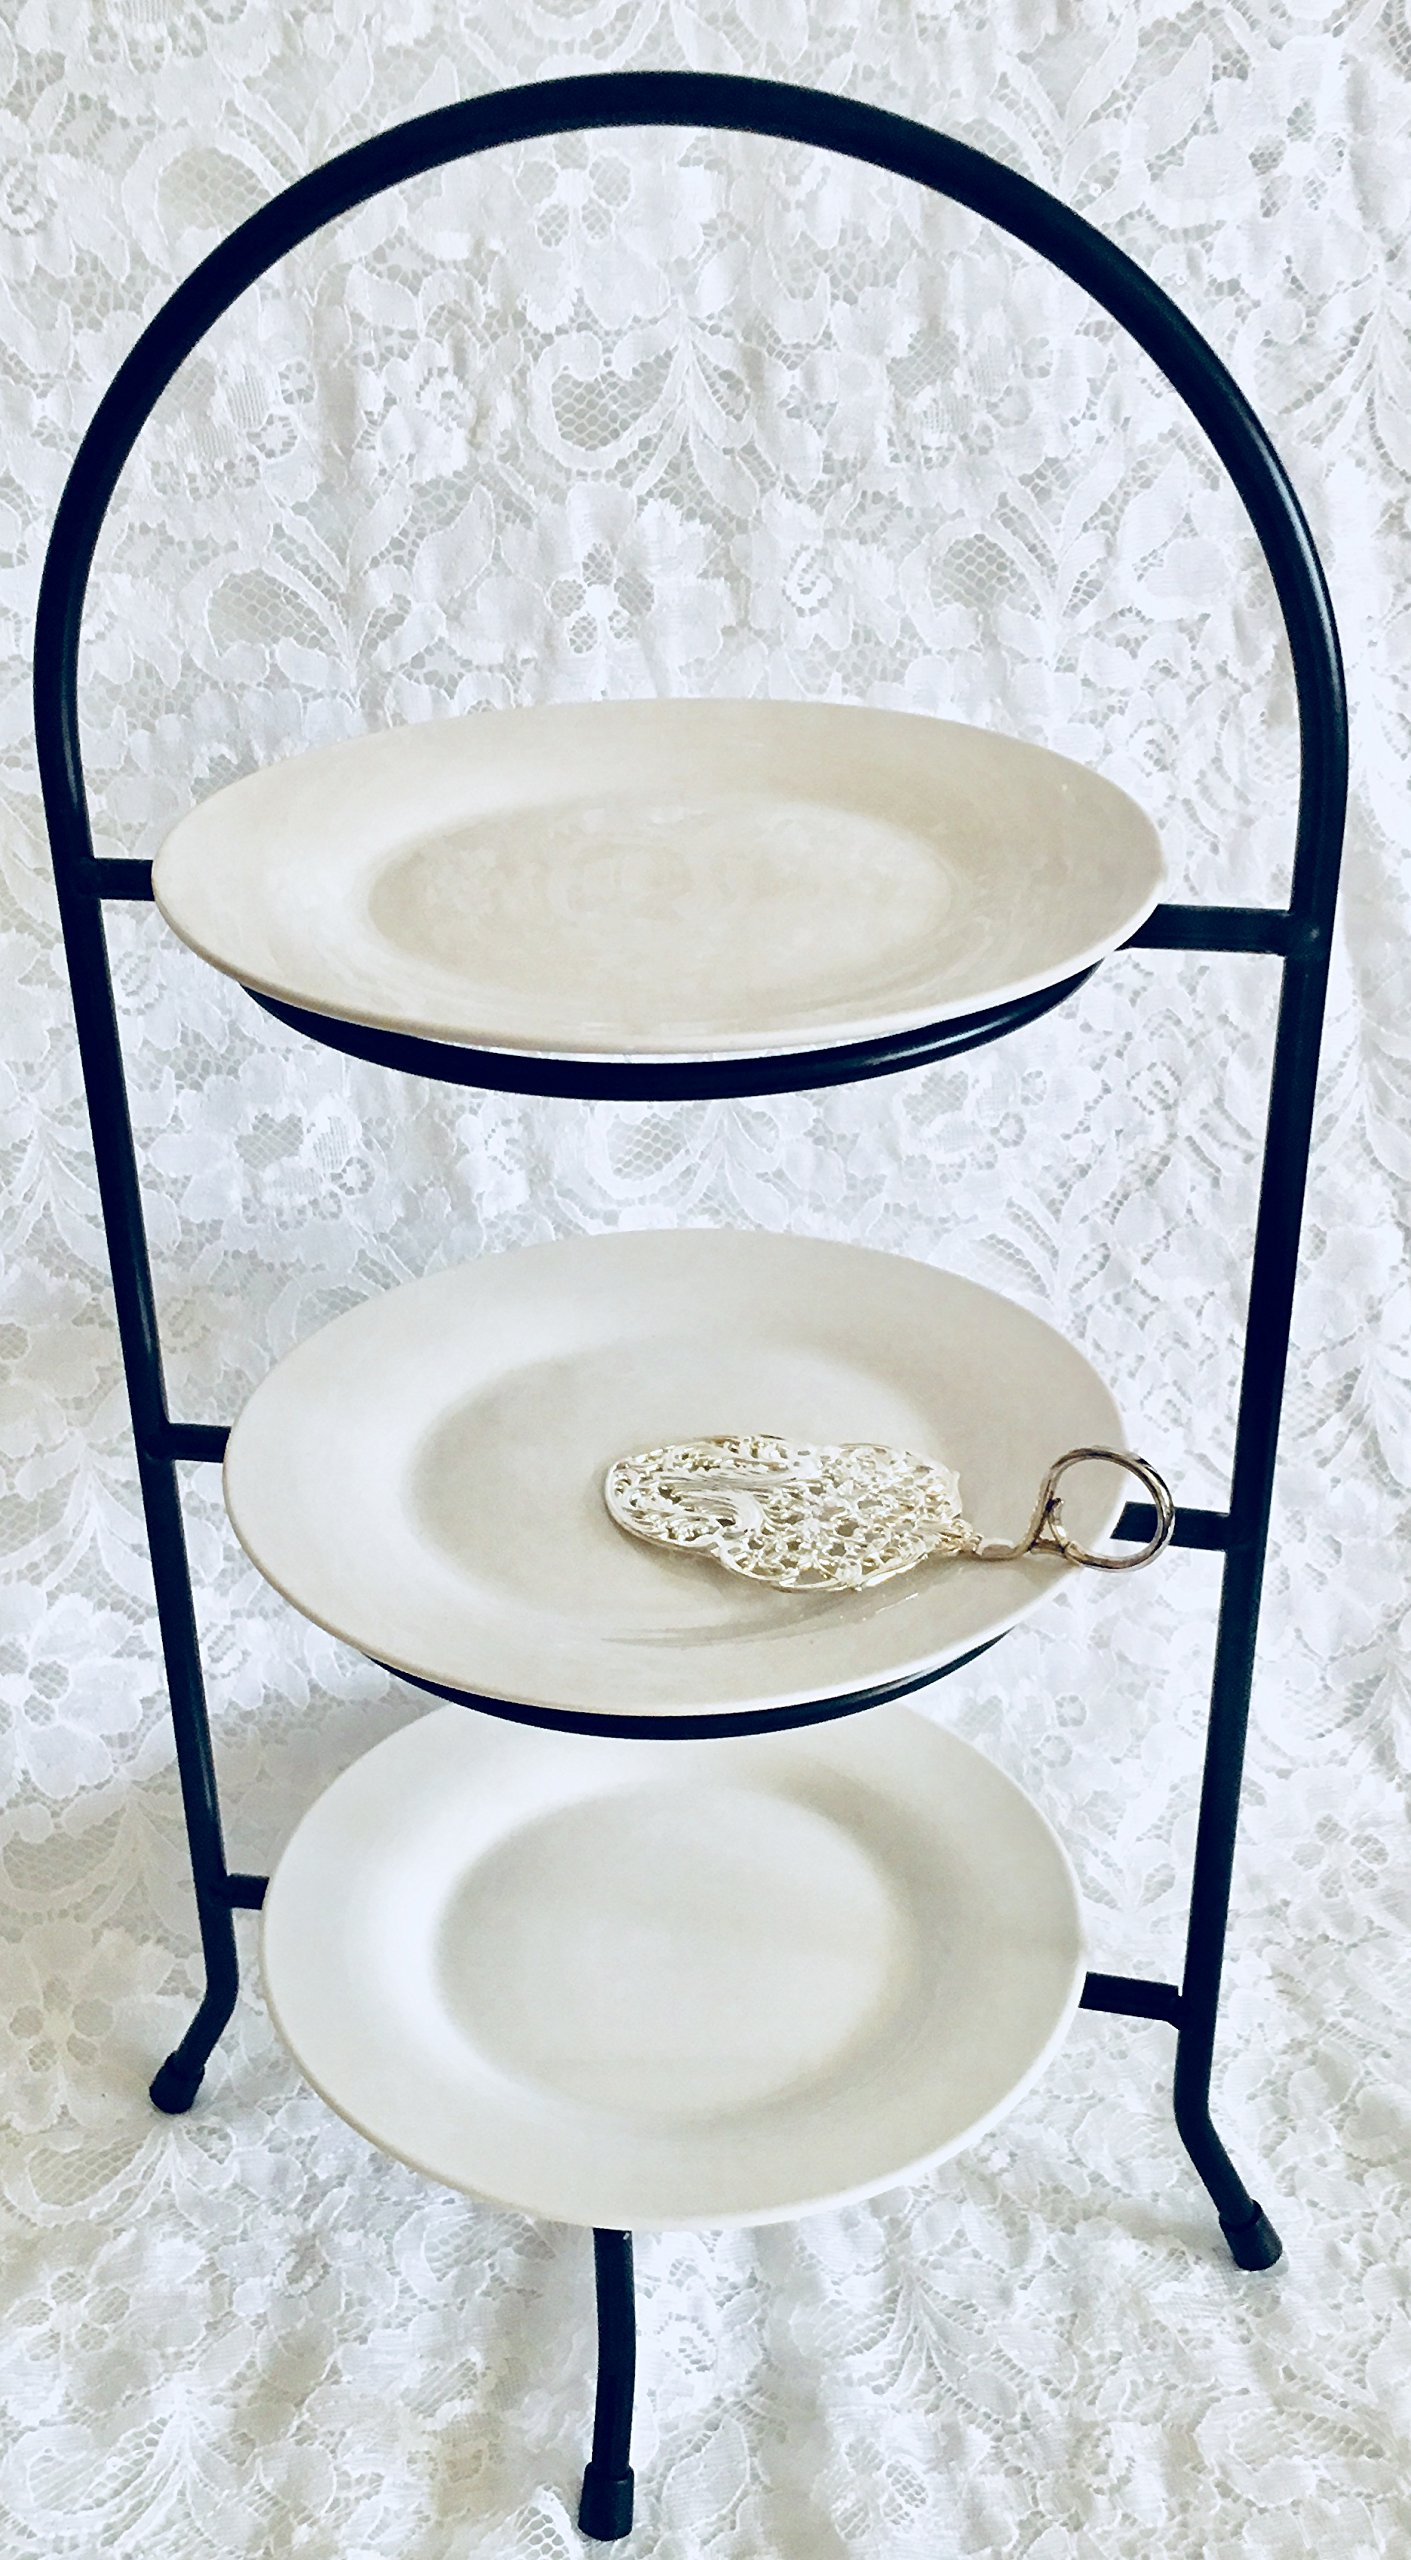 3 Tiered Serving Tray Platter Stand and Dessert Plate Bundle Three Tier Serving Stand to Display Tea Sandwiches and Bite-size Desserts